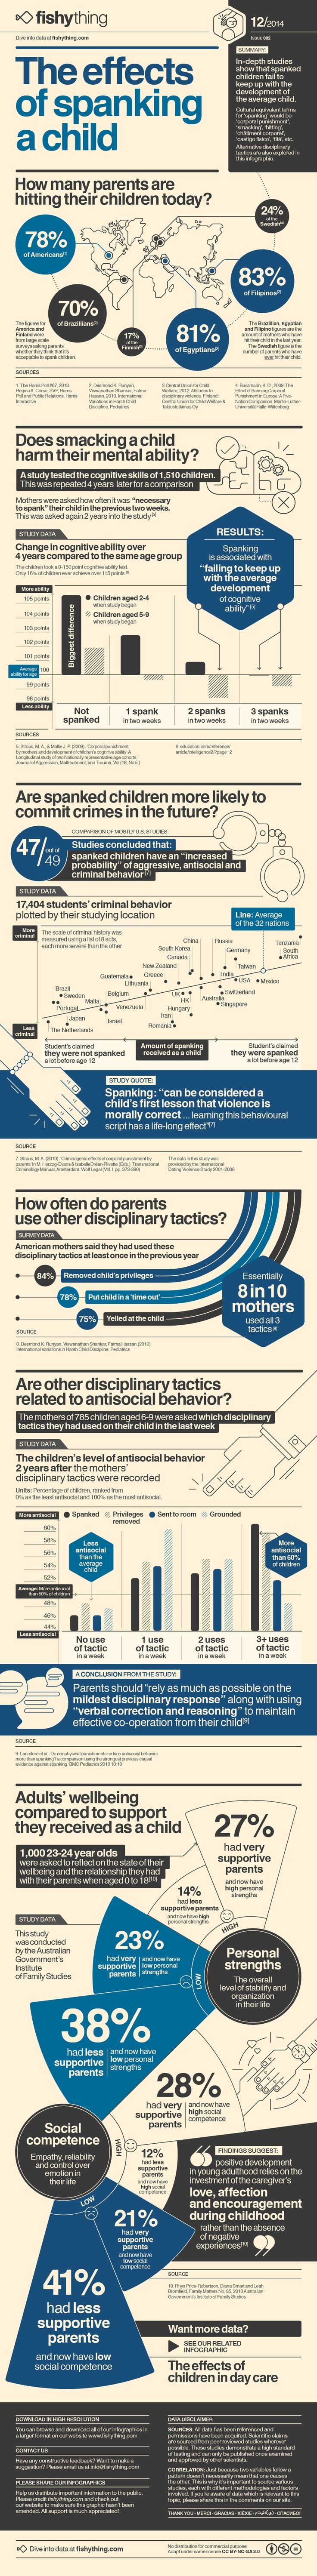 Infographic - The Effects of Spanking a Child